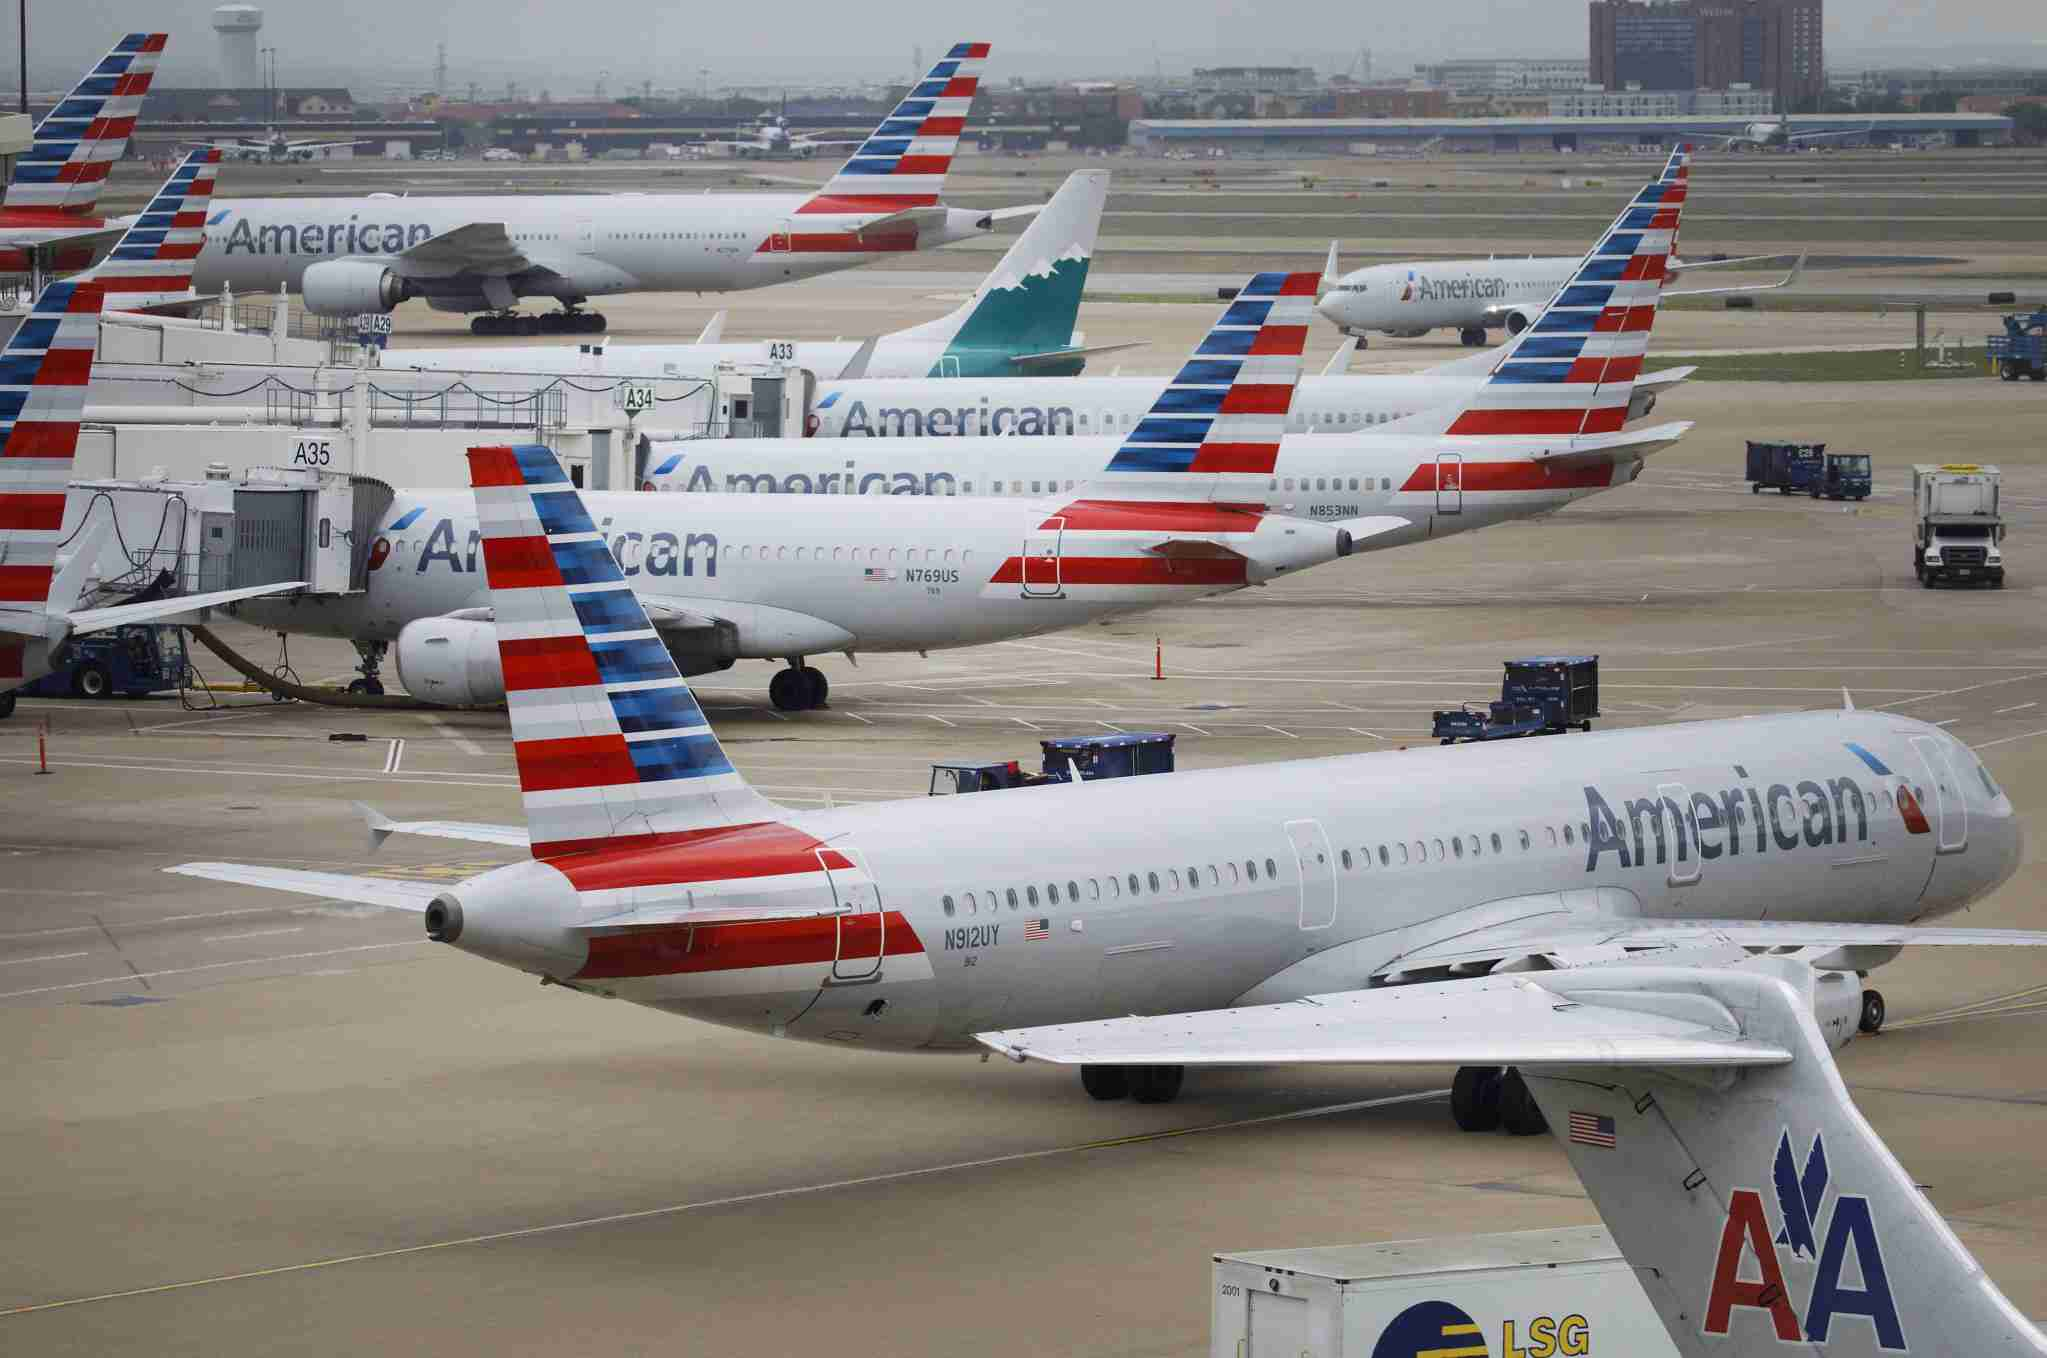 American Airlines Group Inc. planes stand at Dallas-Fort Worth International Airport (DFW) in Grapevine, Texas, U.S., on Friday, April 6, 2018. American Airlines is scheduled to release earnings figures on April 26. Photographer: Patrick T. Fallon/Bloomberg via Getty Images